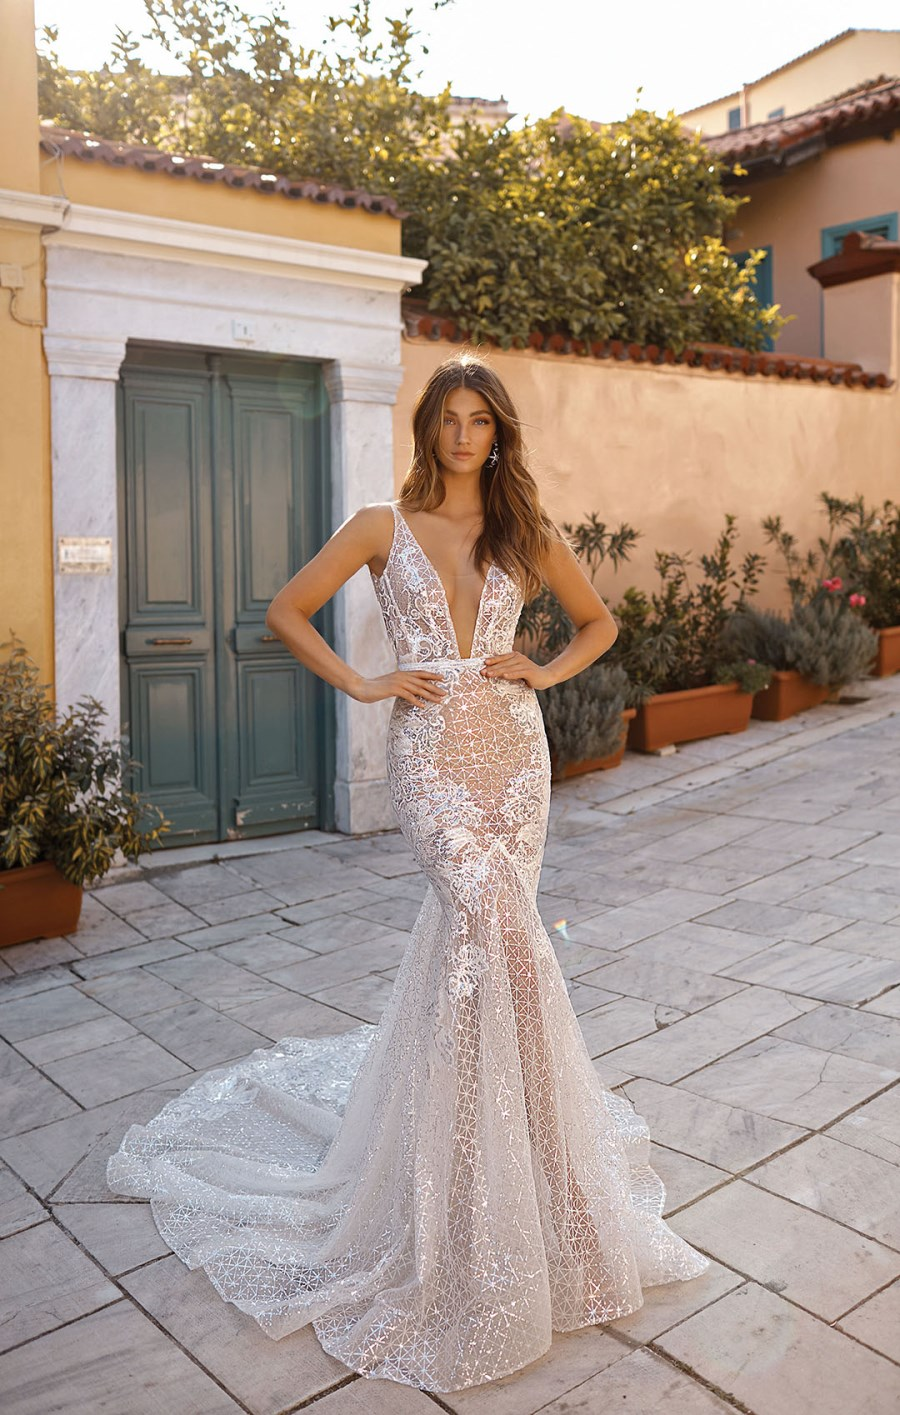 berta-wedding-dress-2019-1 (11)_2